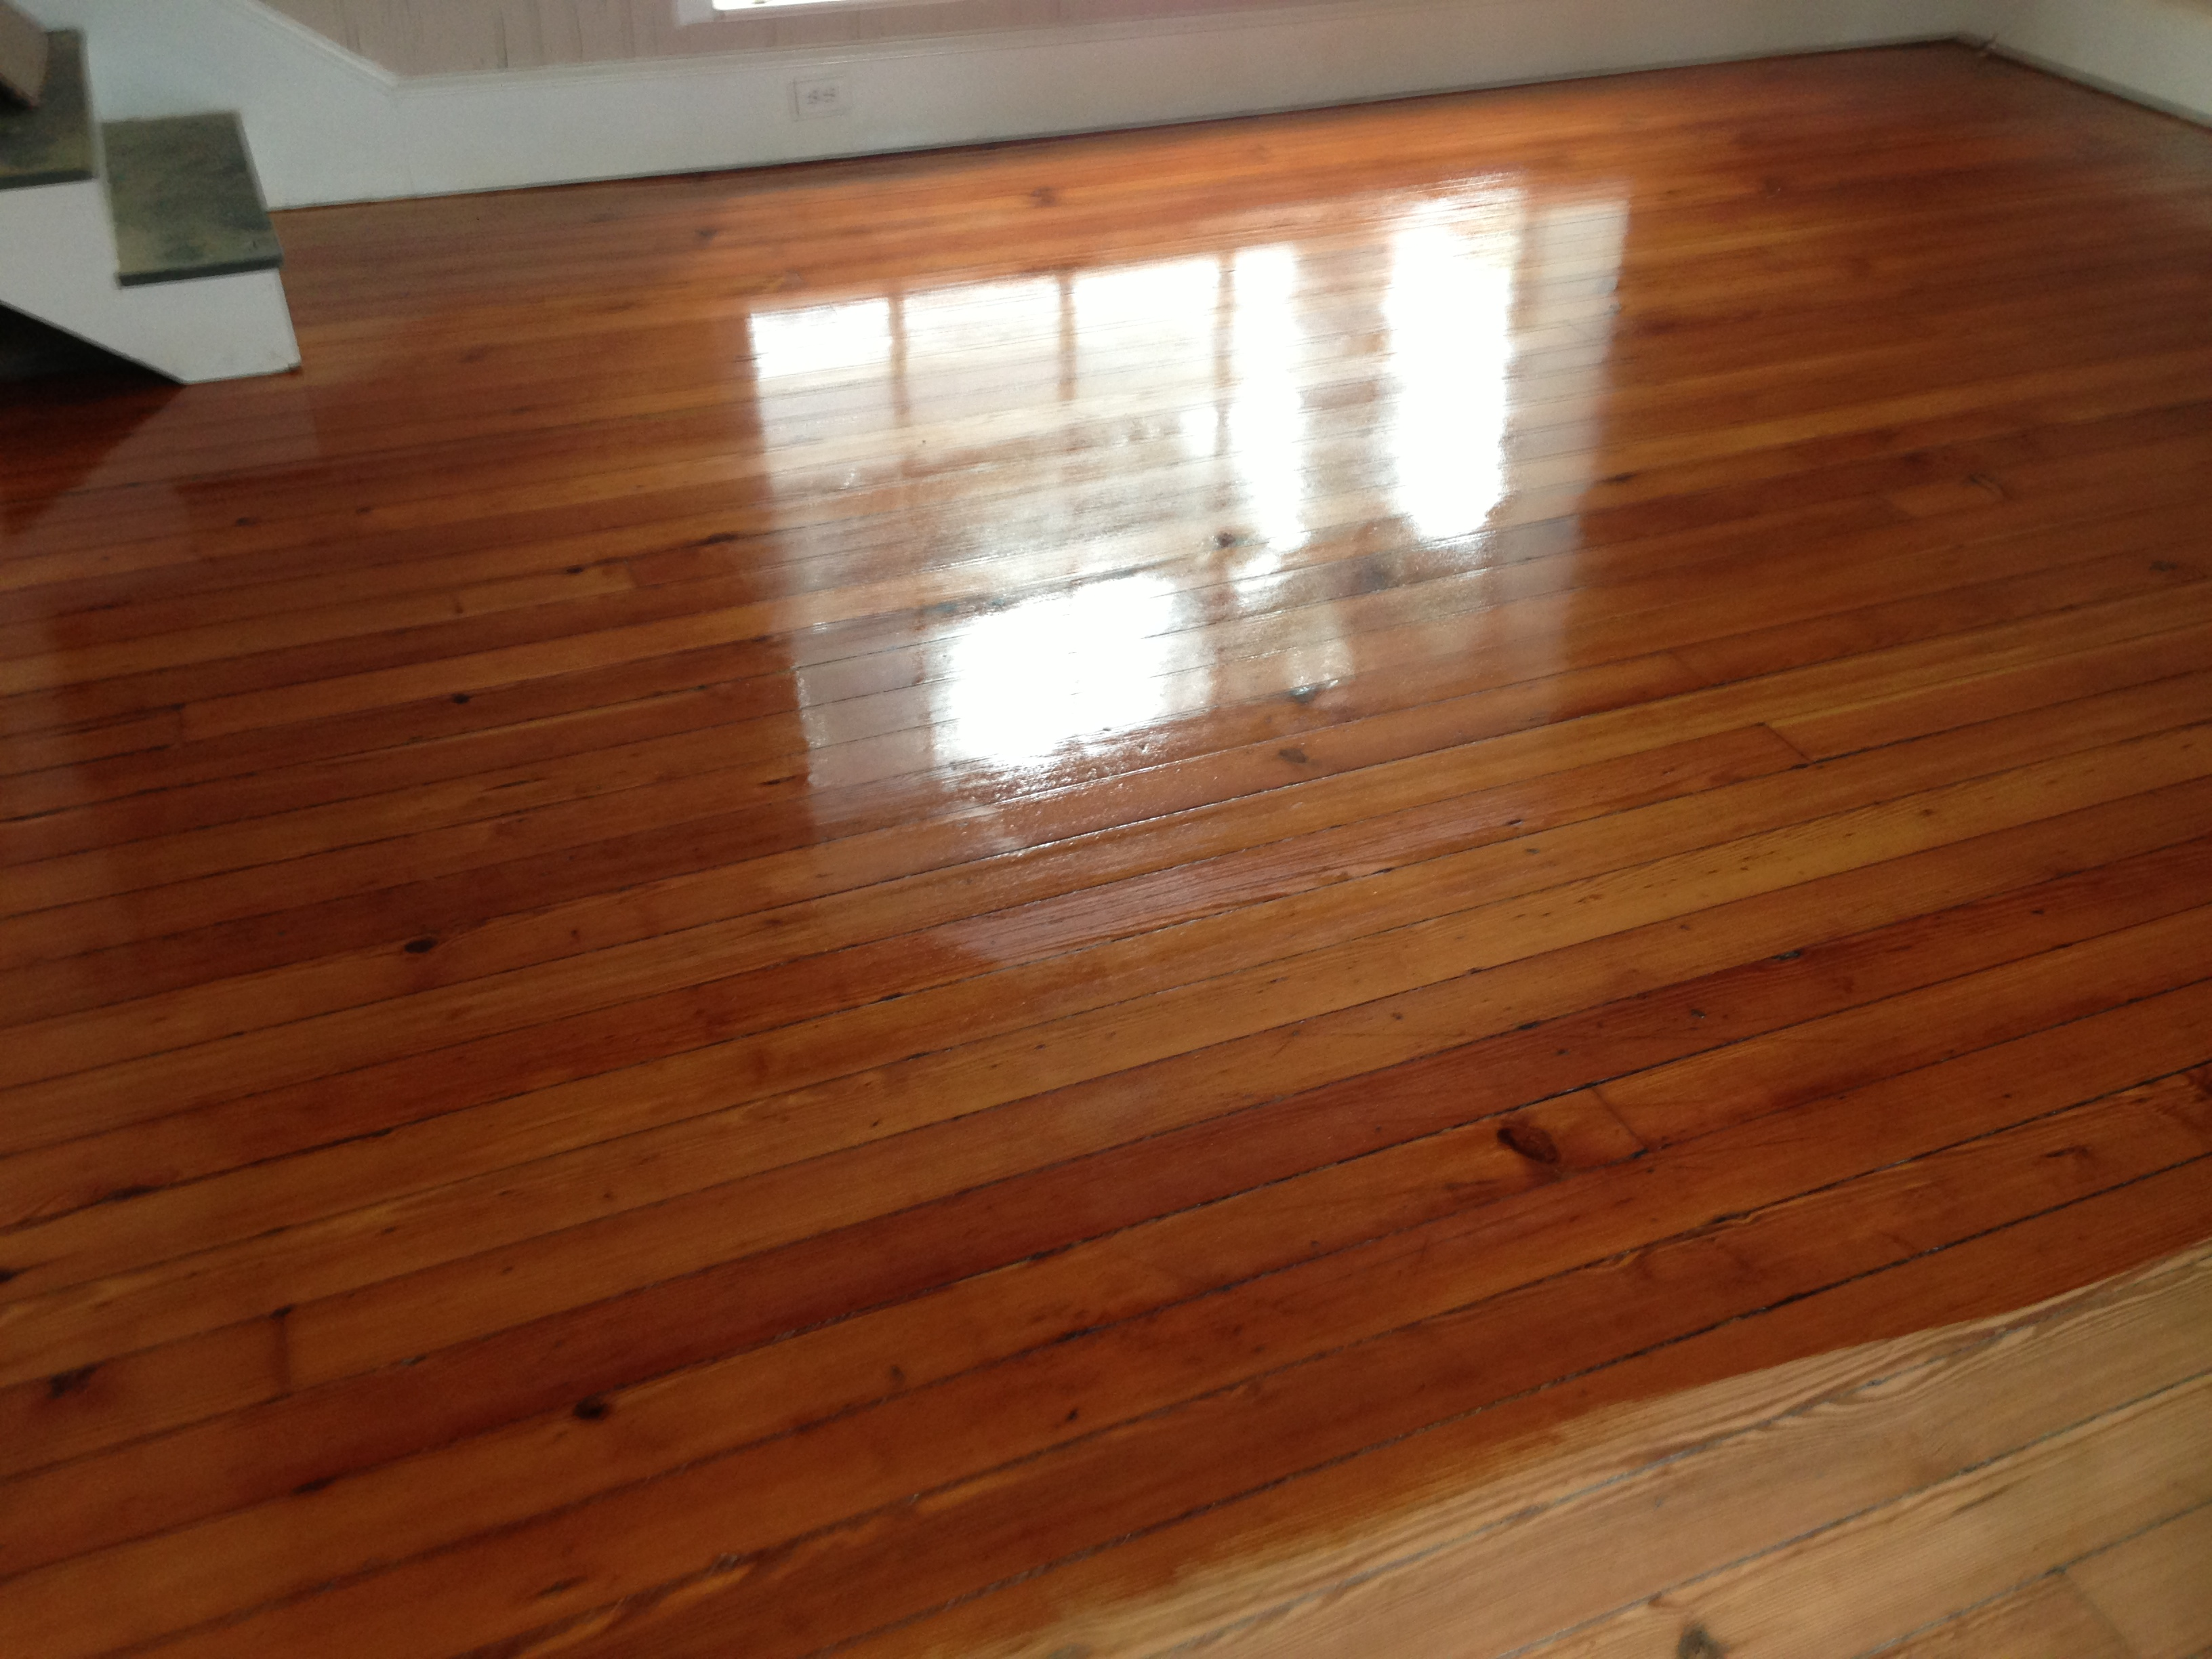 Refinishing heart pine floors meze blog Unfinished hardwood floors